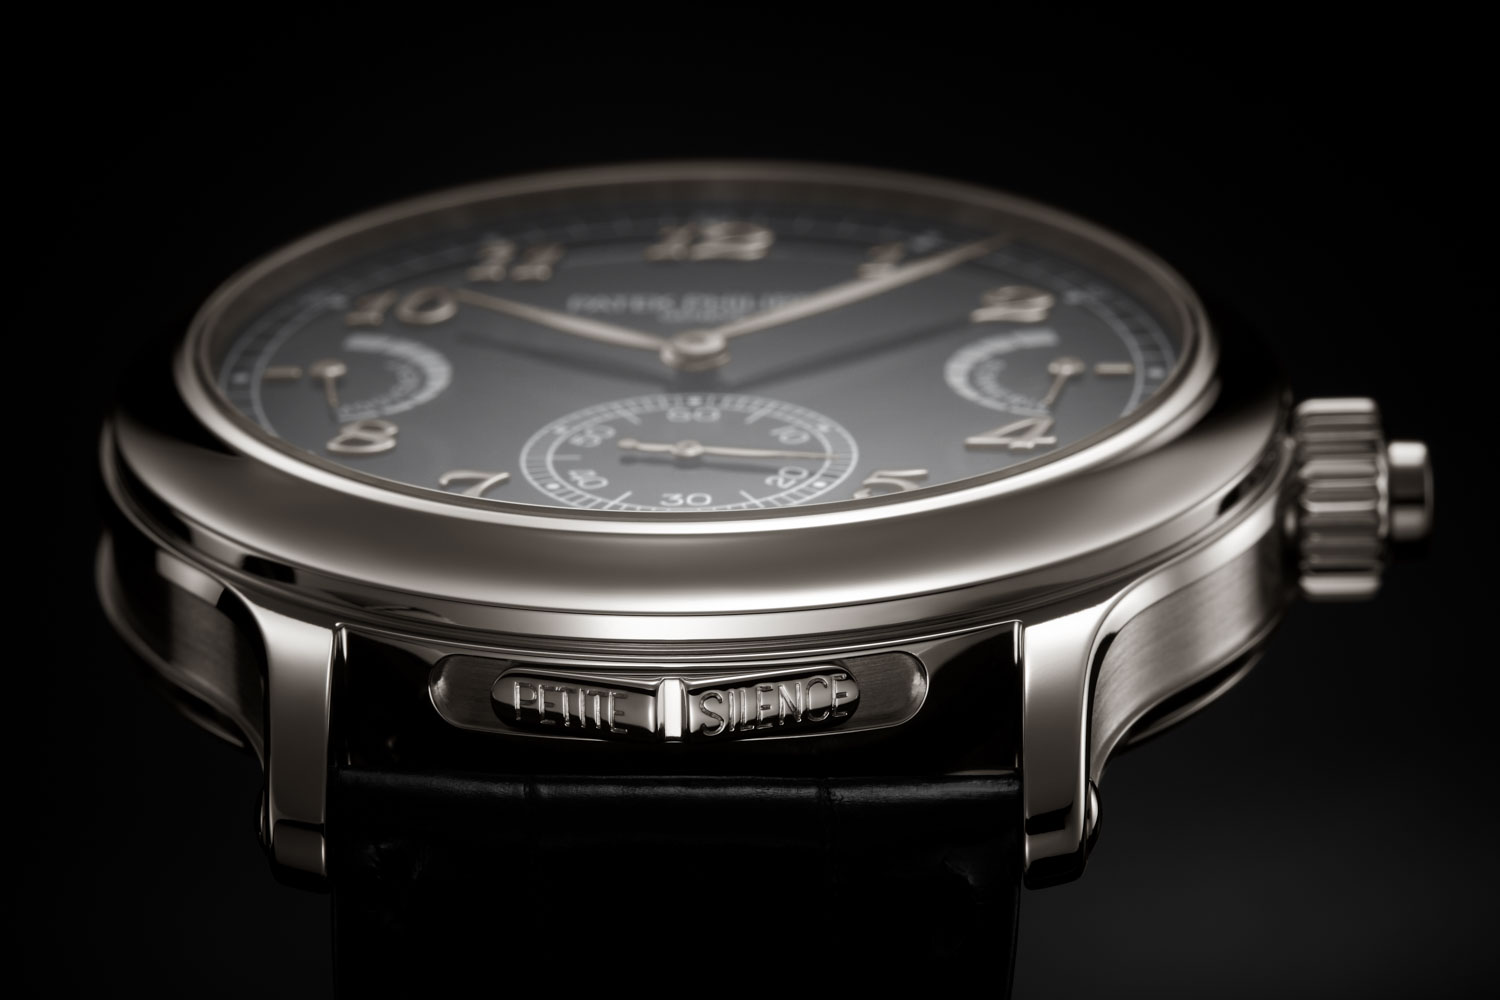 For the Patek Philippe Ref. 6301P Grande Sonnerie the slide switch at 6 o'clock selects the strikework mode (petite sonnerie, grande sonnerie, silence)